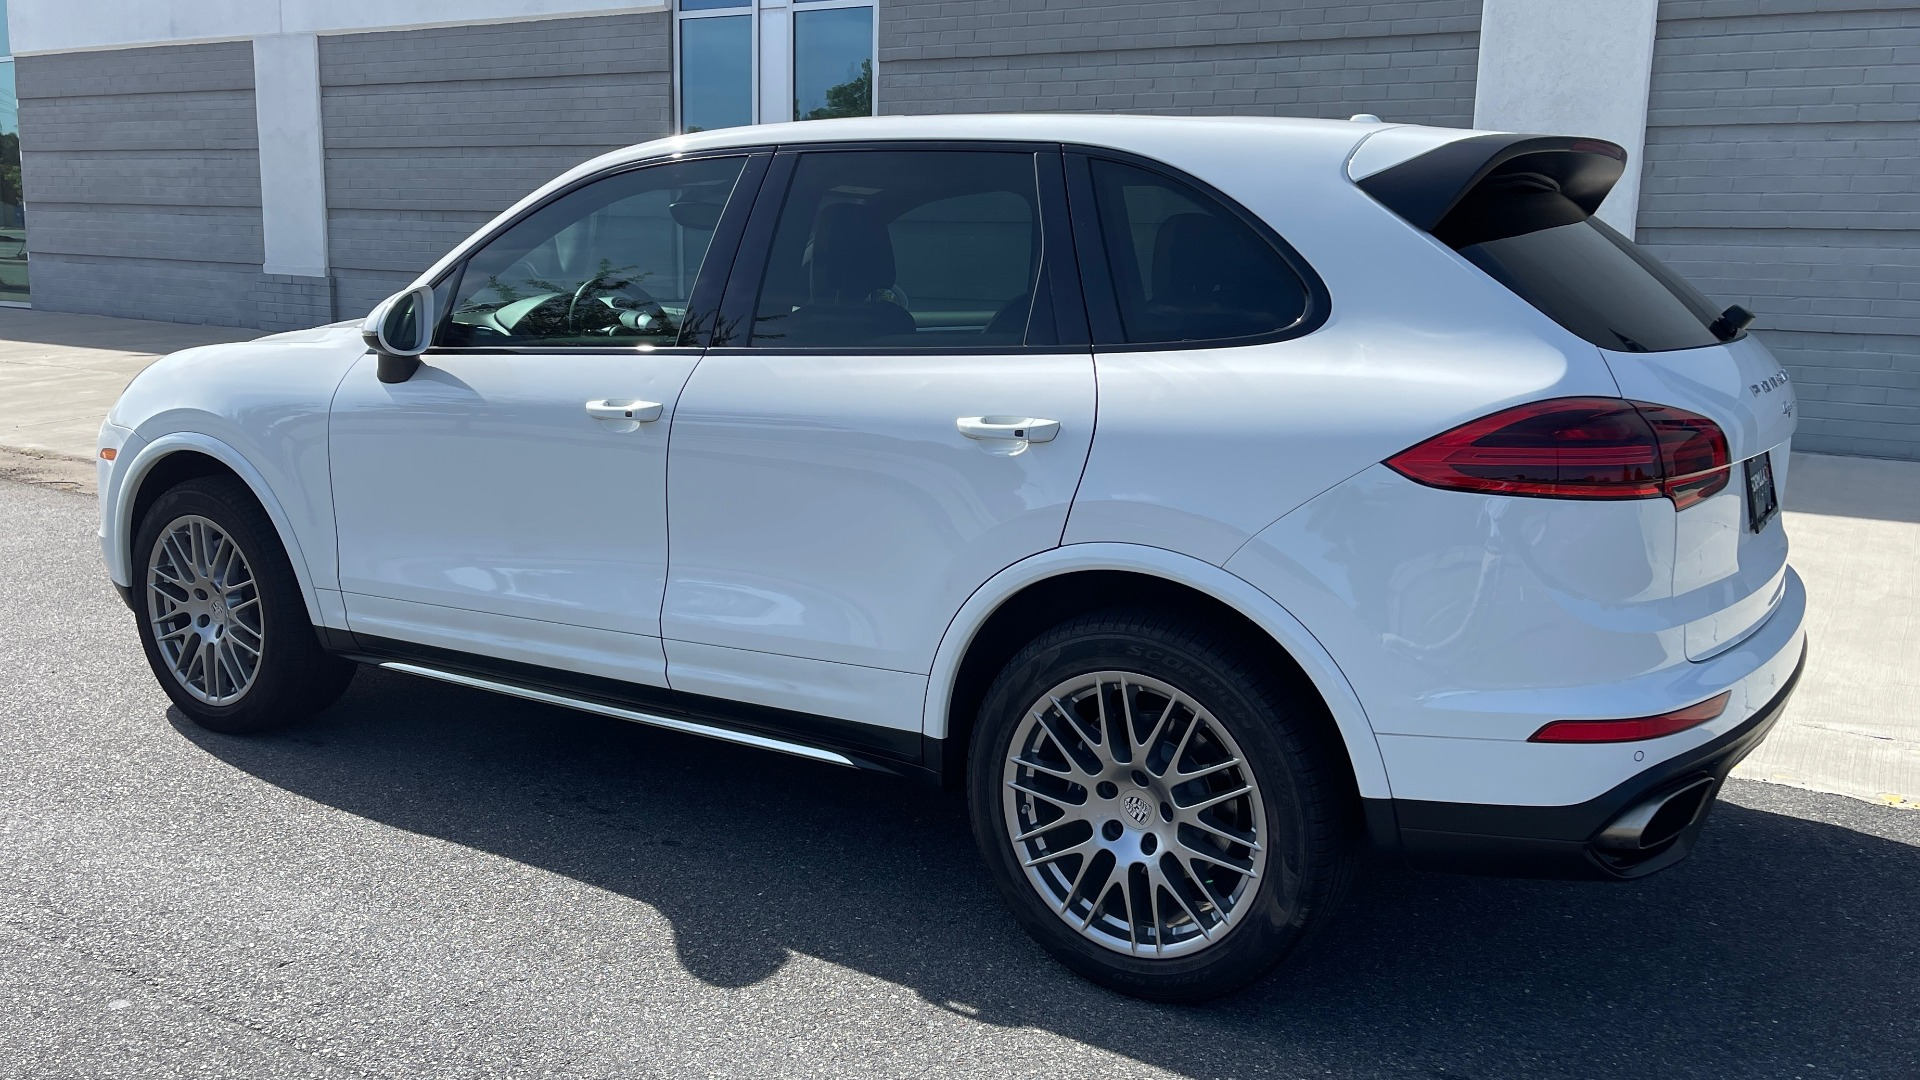 Used 2016 Porsche CAYENNE AWD / 3.6L TURBO / PREMIUM / BOSE / PANO-ROOF / NAV / LCA for sale $32,995 at Formula Imports in Charlotte NC 28227 5